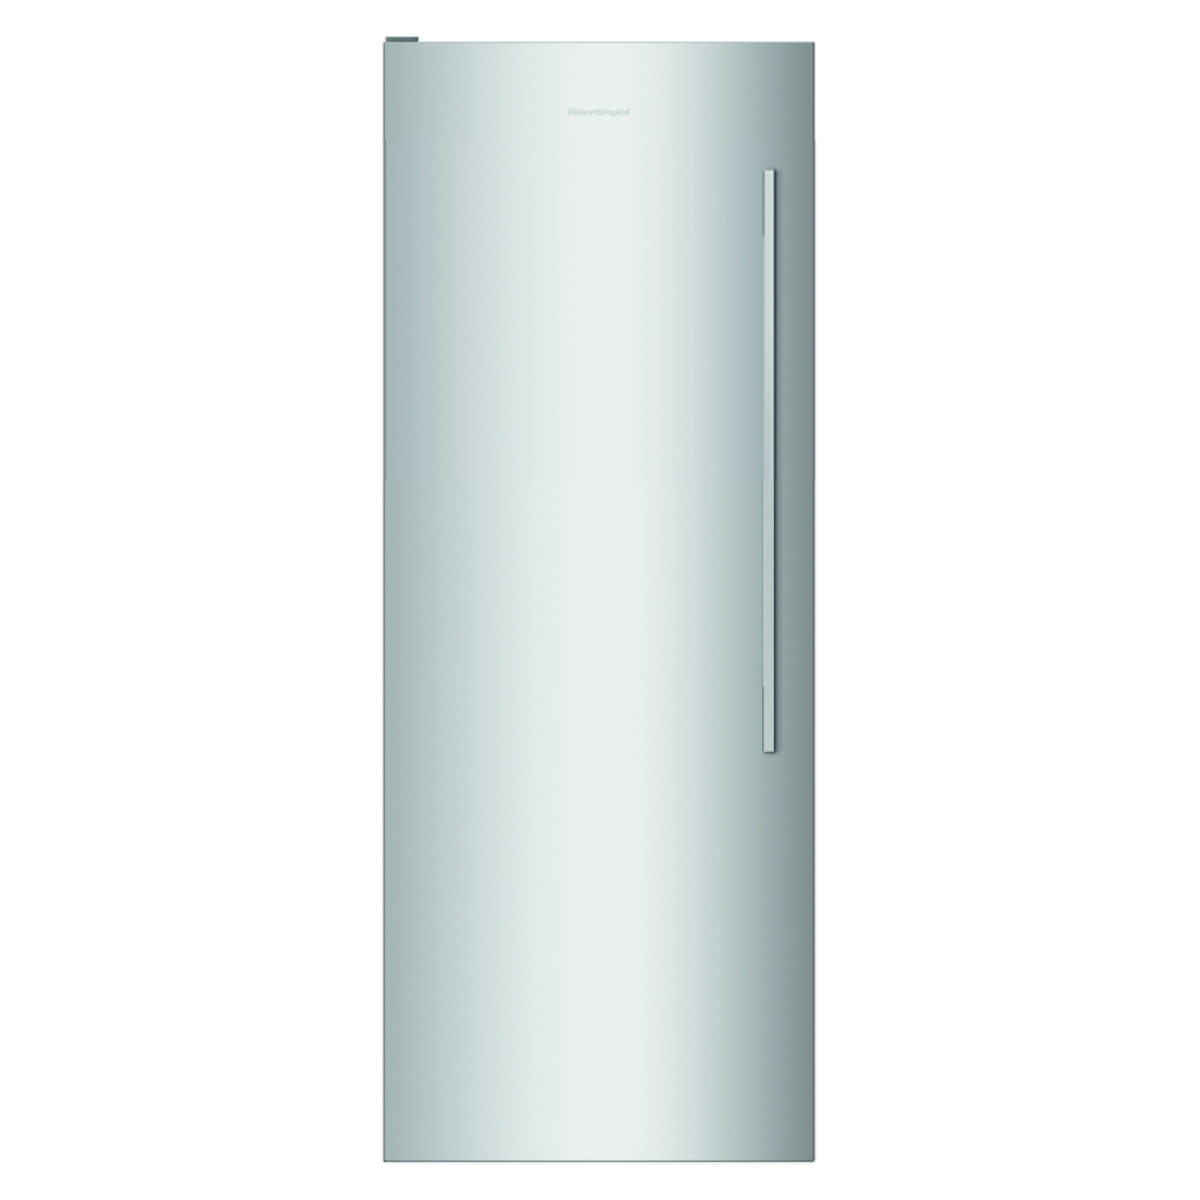 Fisher & Paykel E450LXFD1 451 litre Upright Fridge